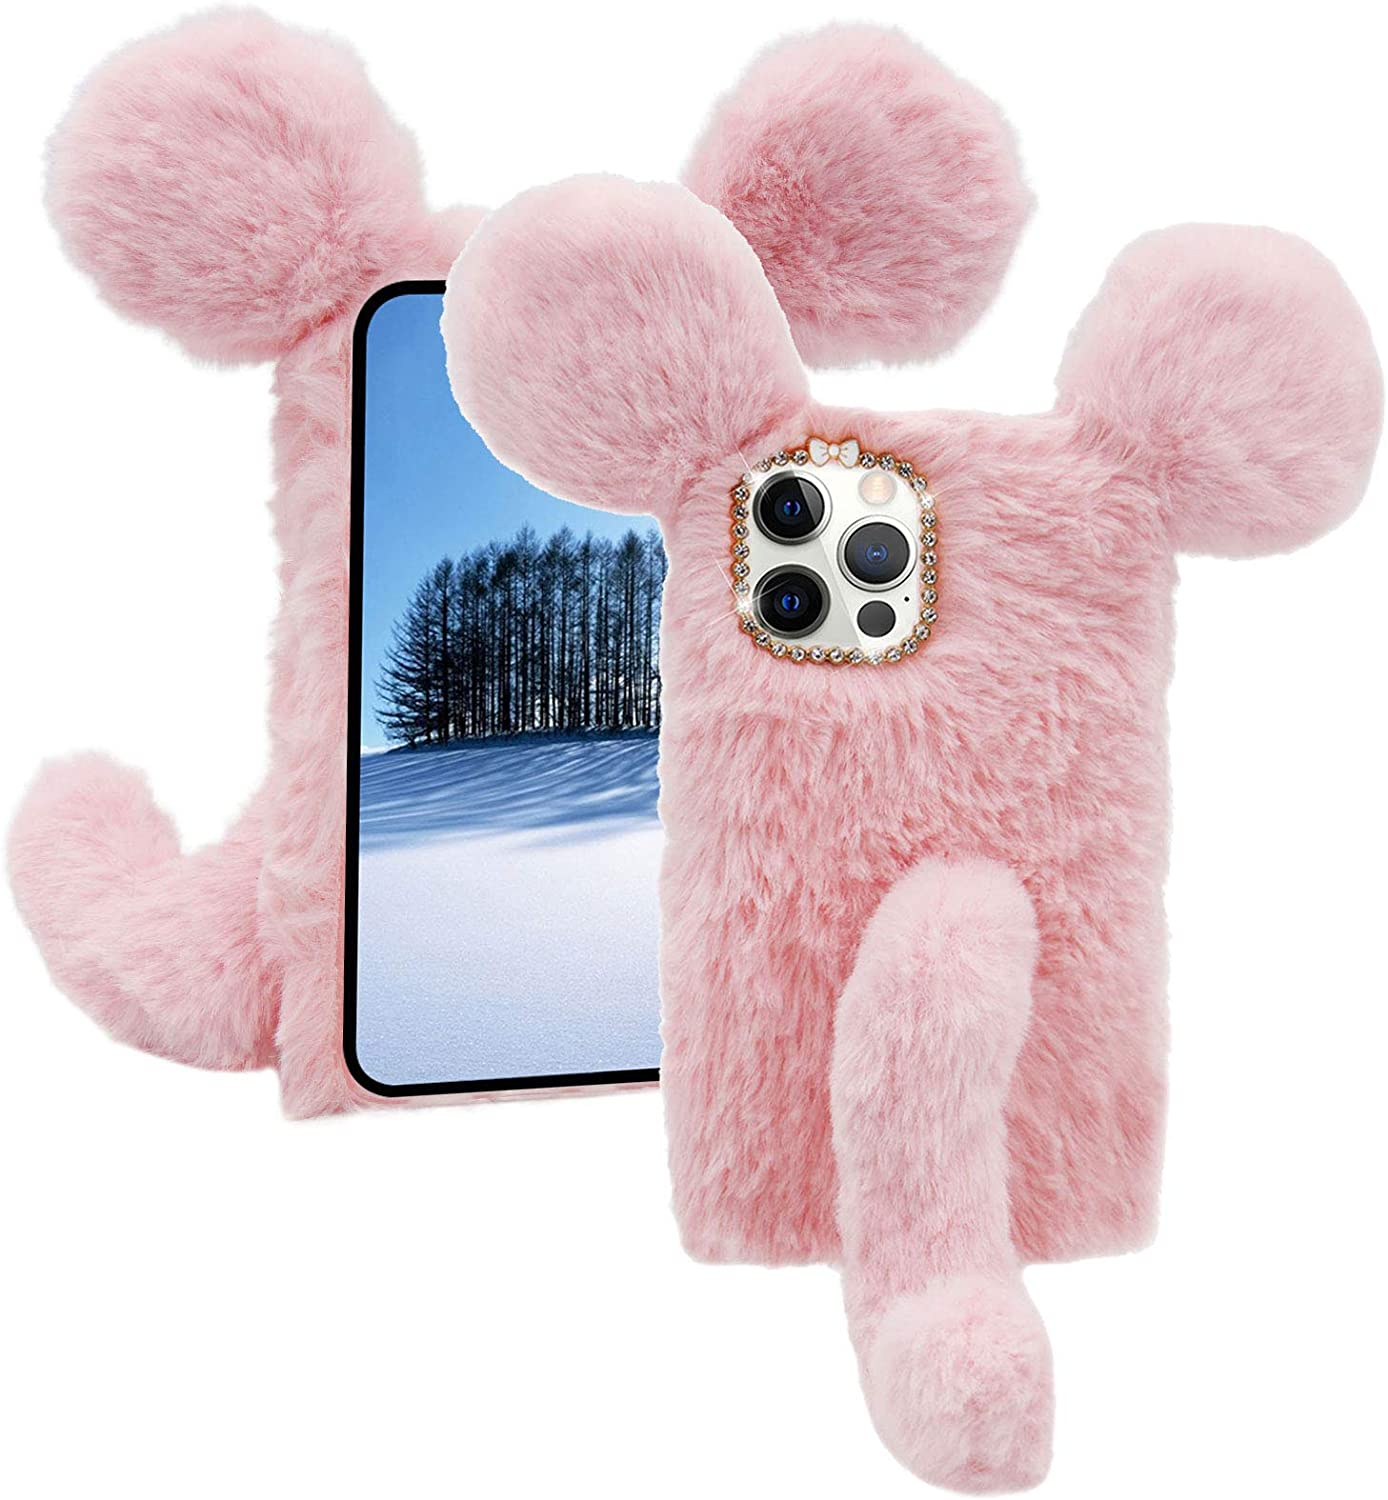 Soft Fluffy Furry Mouse Case for Beauty products Oneplus Scr Max 77% OFF Pro 9 MOIKY 5G with